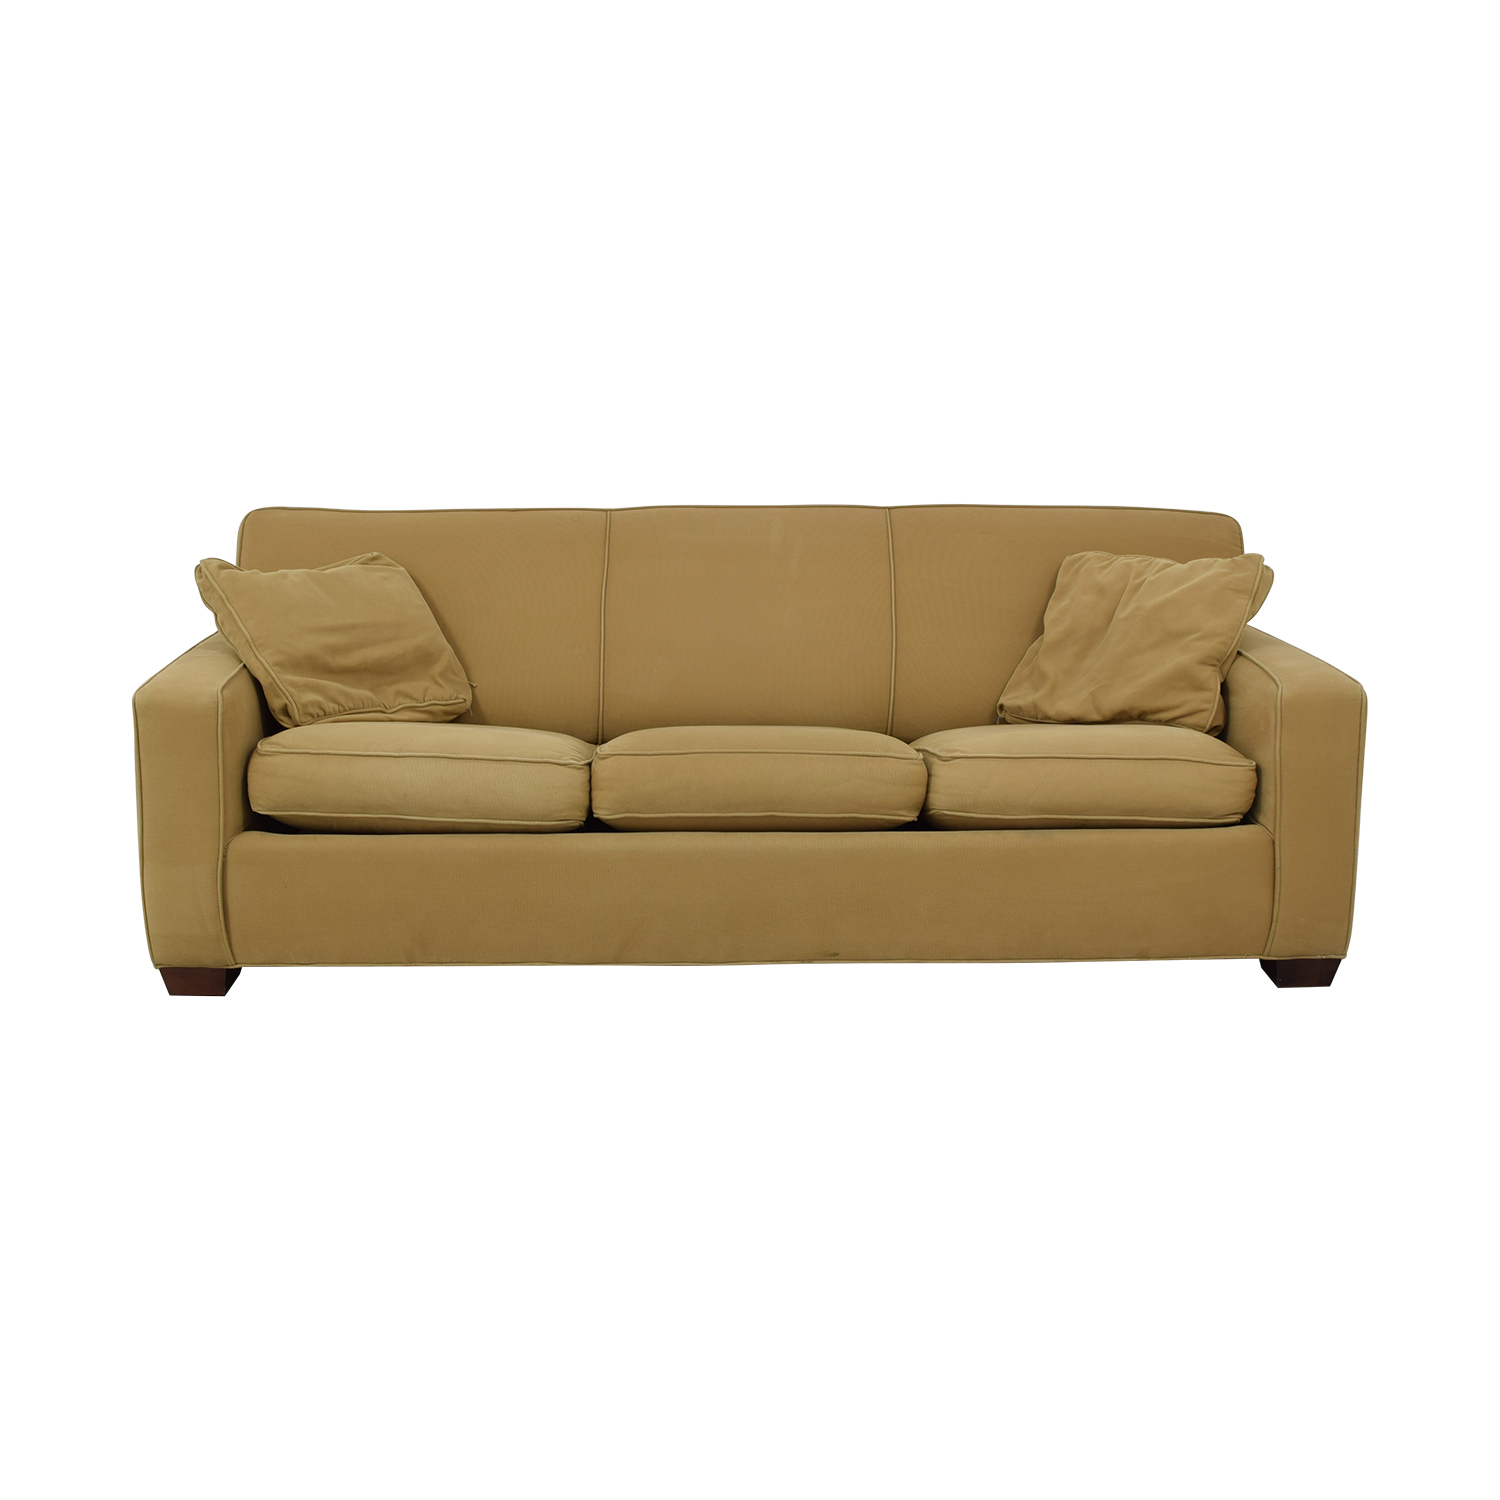 Tilly Fabric Sofa Queen Sleeper 50 Off Jennifer Furniture Jennifer Furniture Tilly Queen